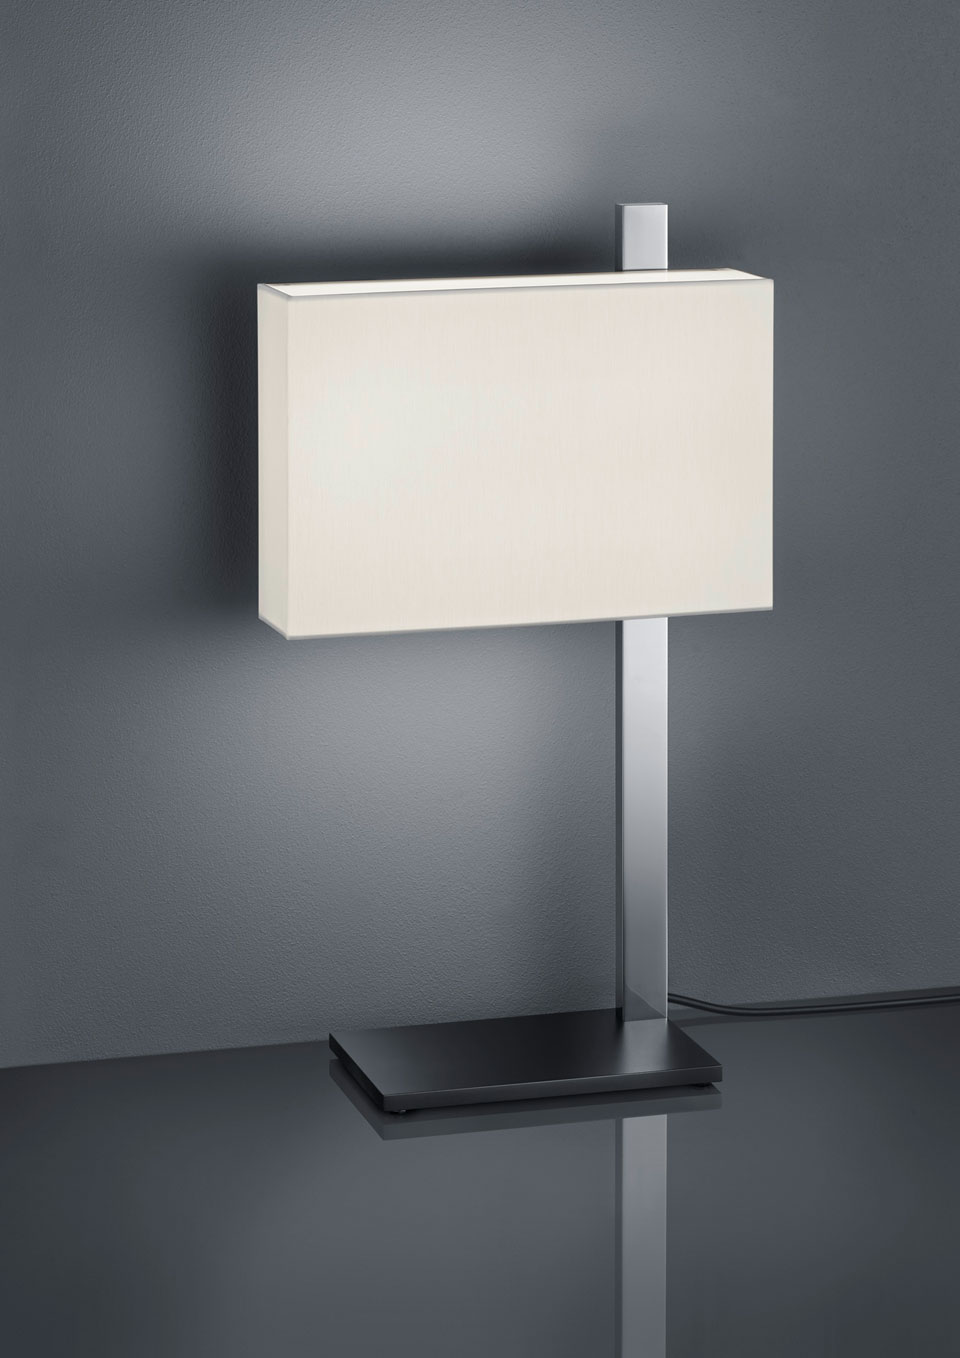 Lampe de table éclairage LED, en nickel poli. Baulmann Leuchten.